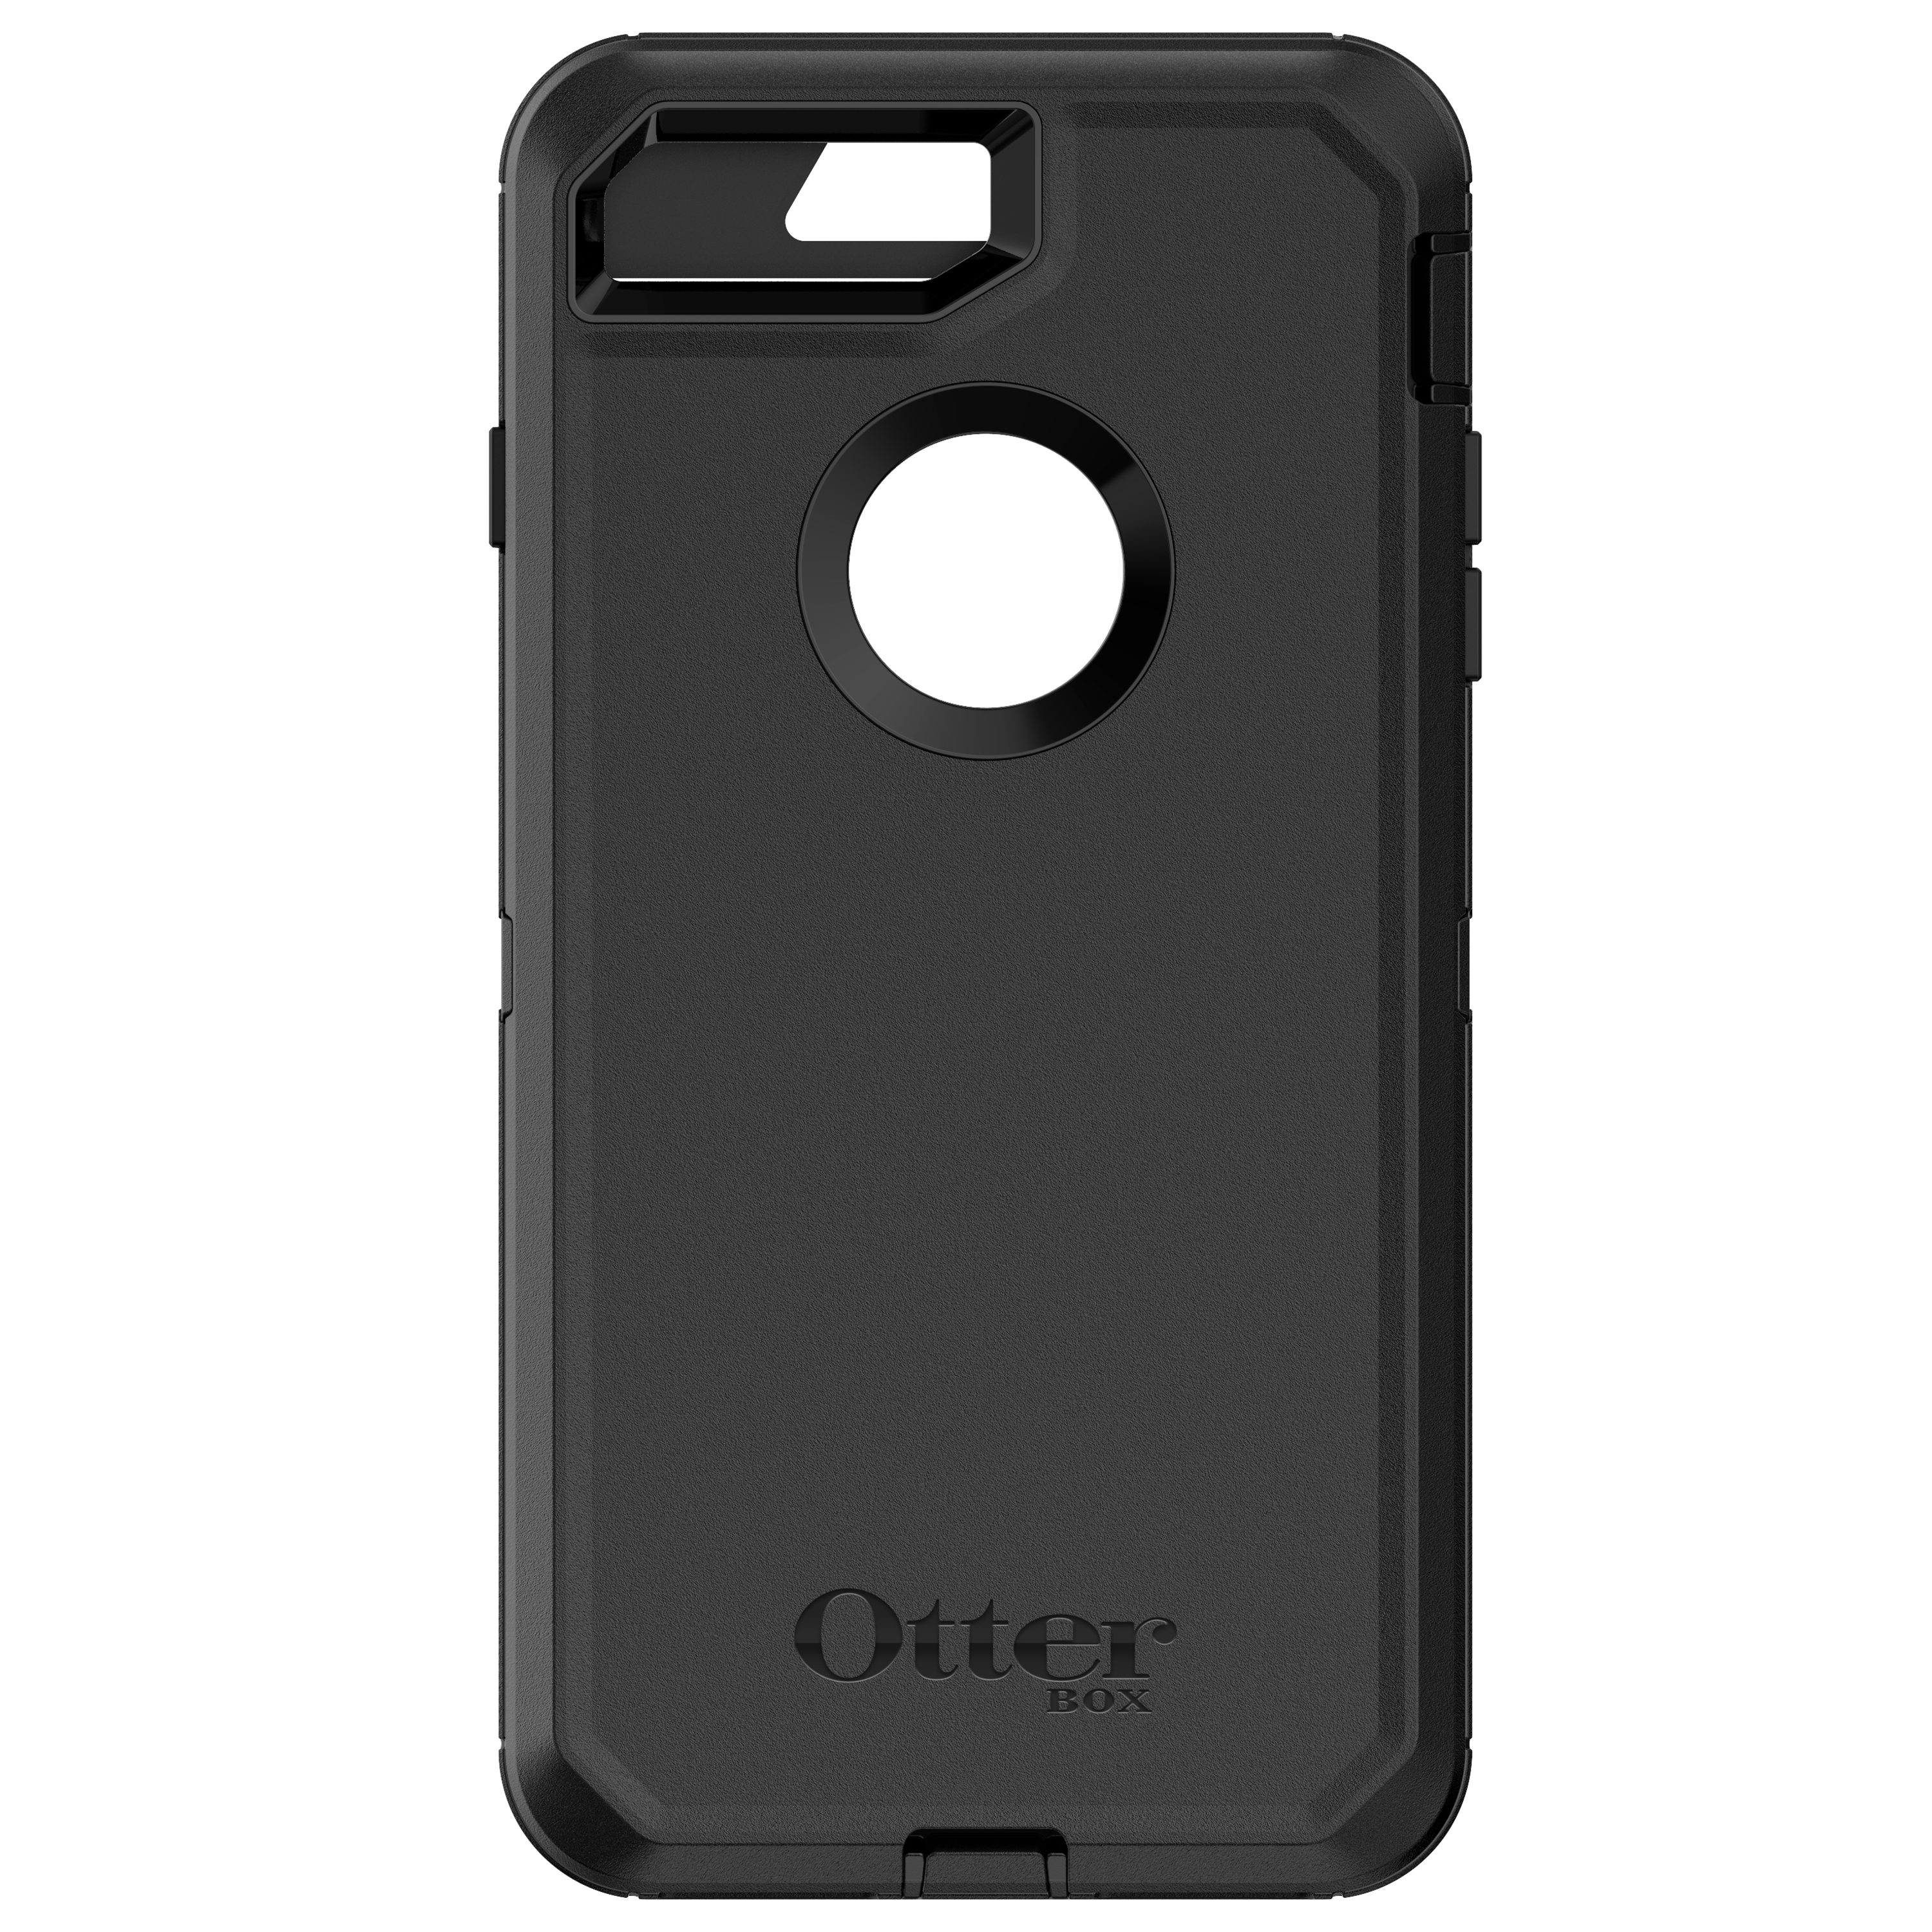 OtterBox Defender Series Case for iPhone 7 Plus, Black